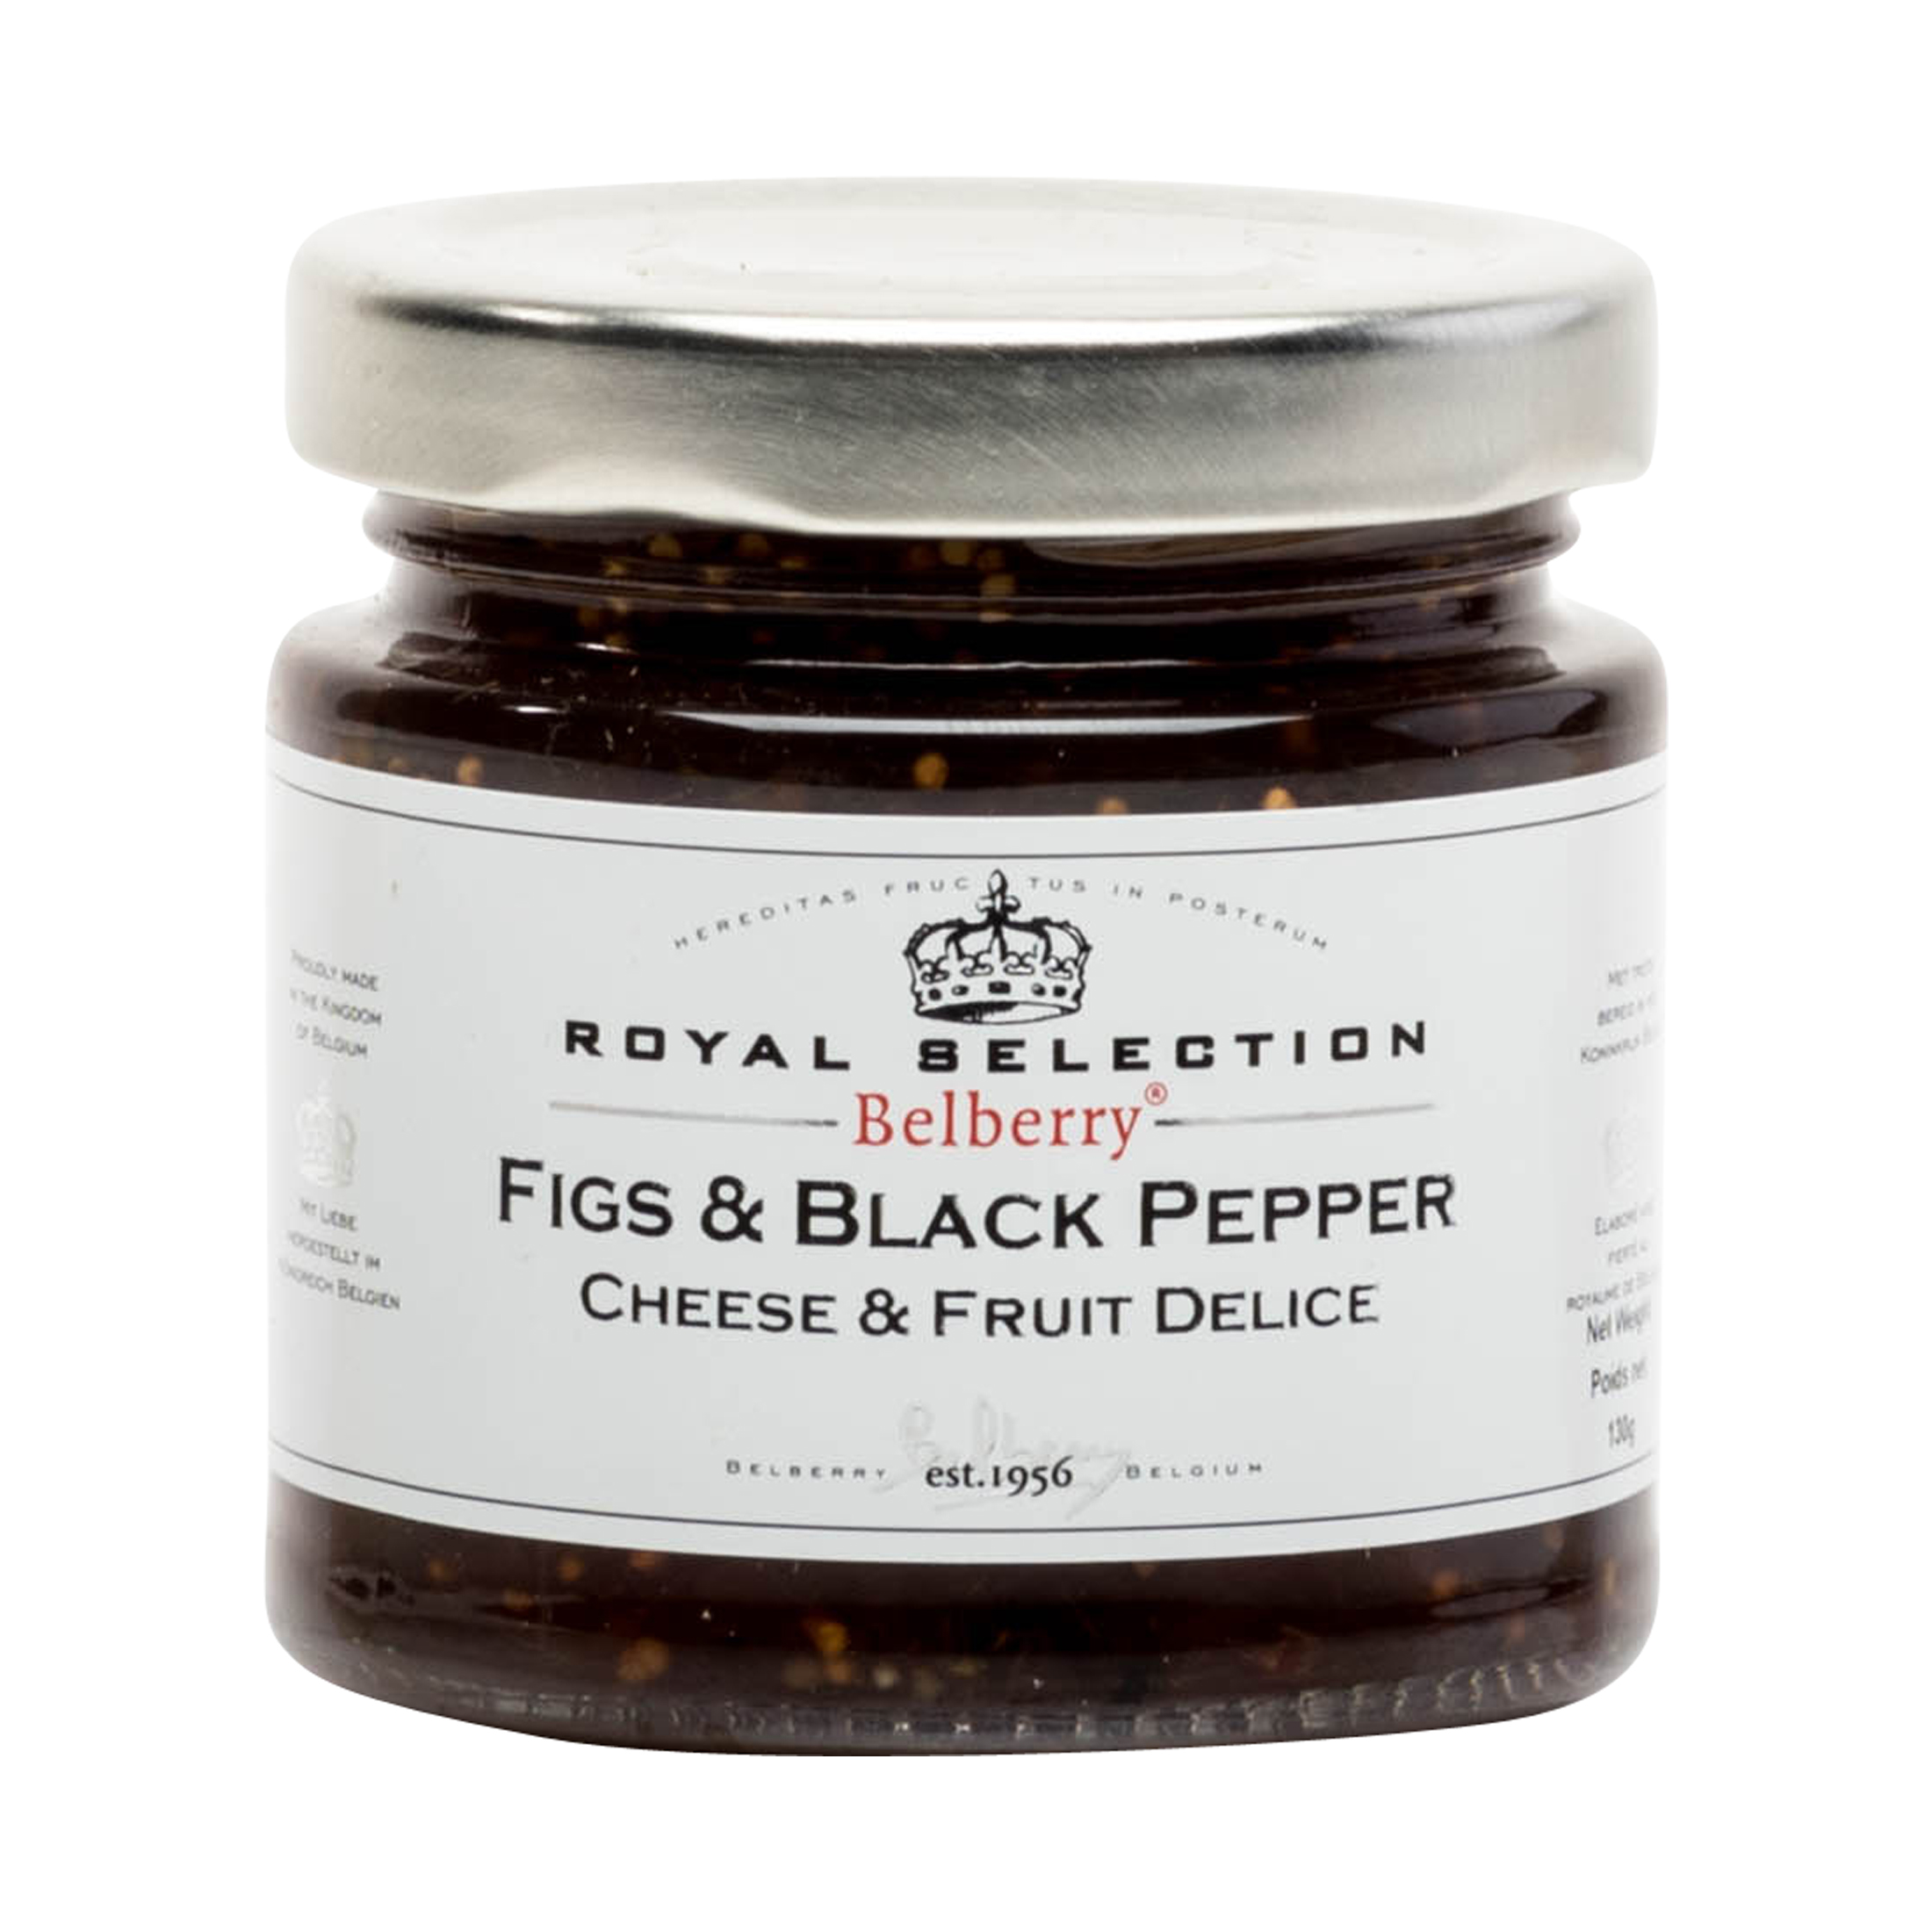 FIGS & BLACK PEPPER ROYAL SELECTION